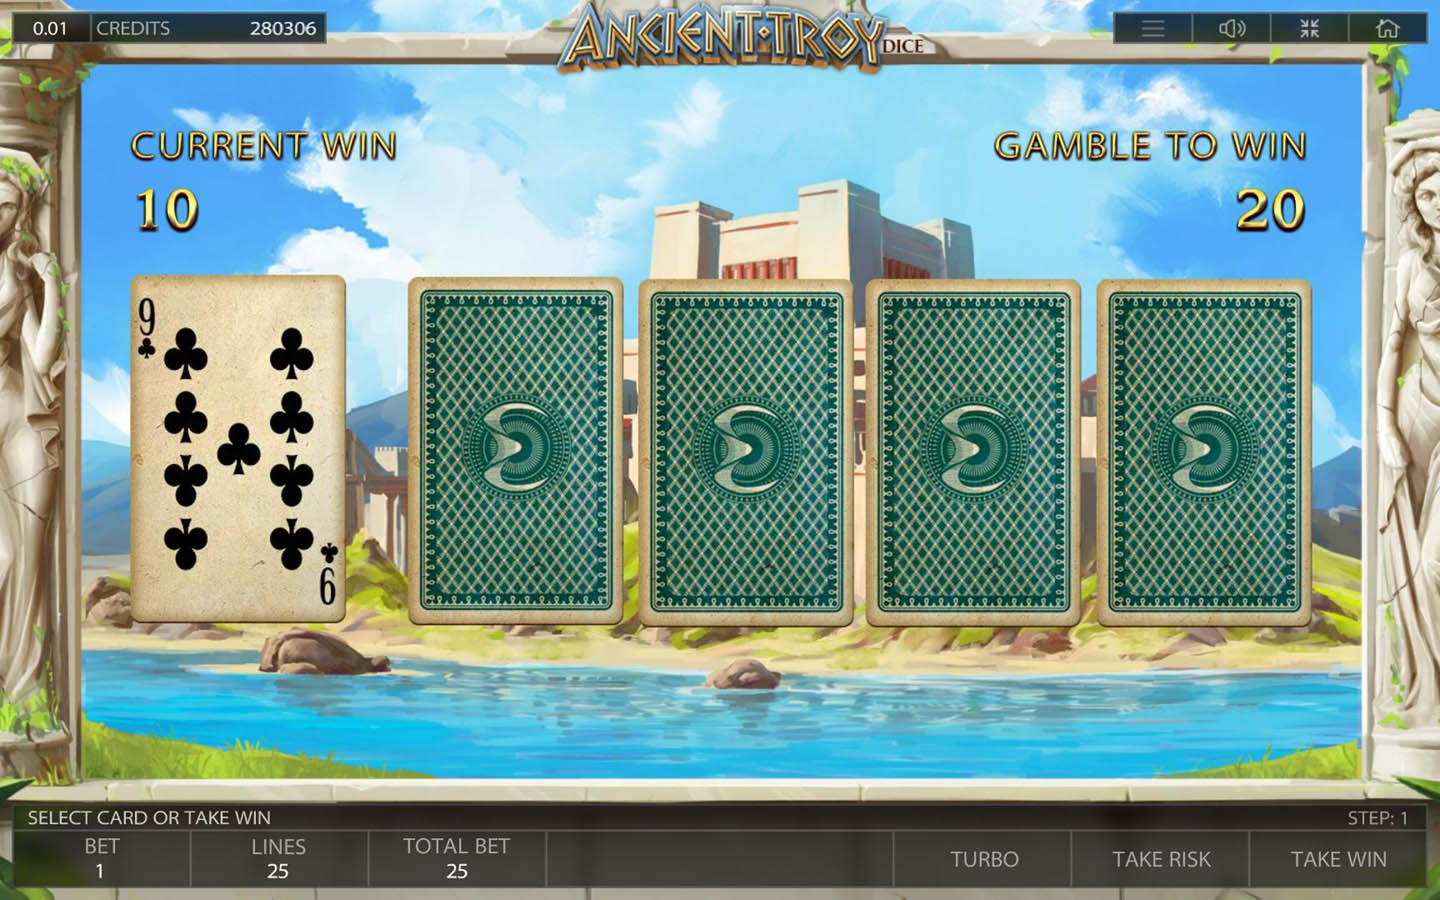 Spiele Ancient Troy Dice - Video Slots Online